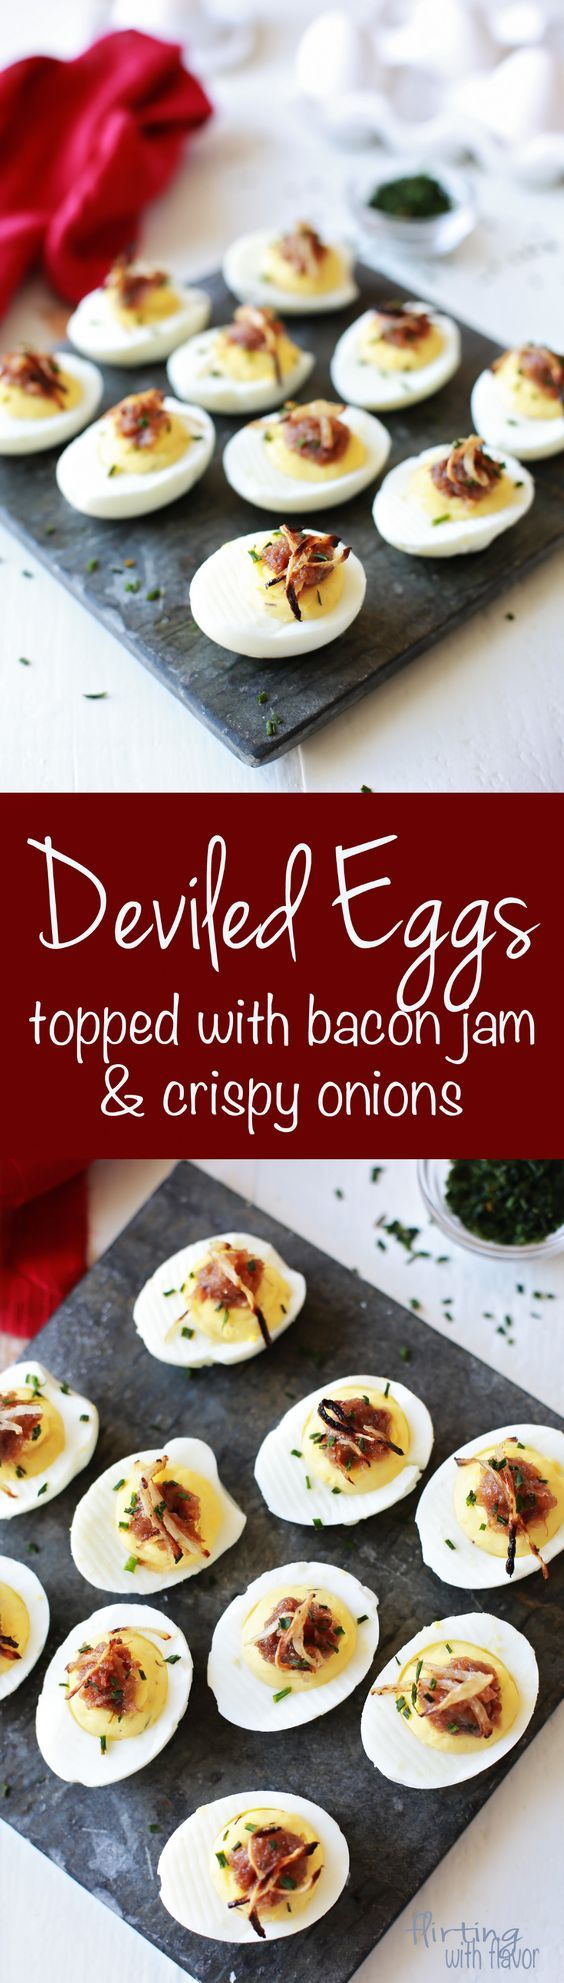 Best Deviled Eggs ever! I made these for a party and they were gone before we to the party. lol! Hubby and I couldn't stop eating them.